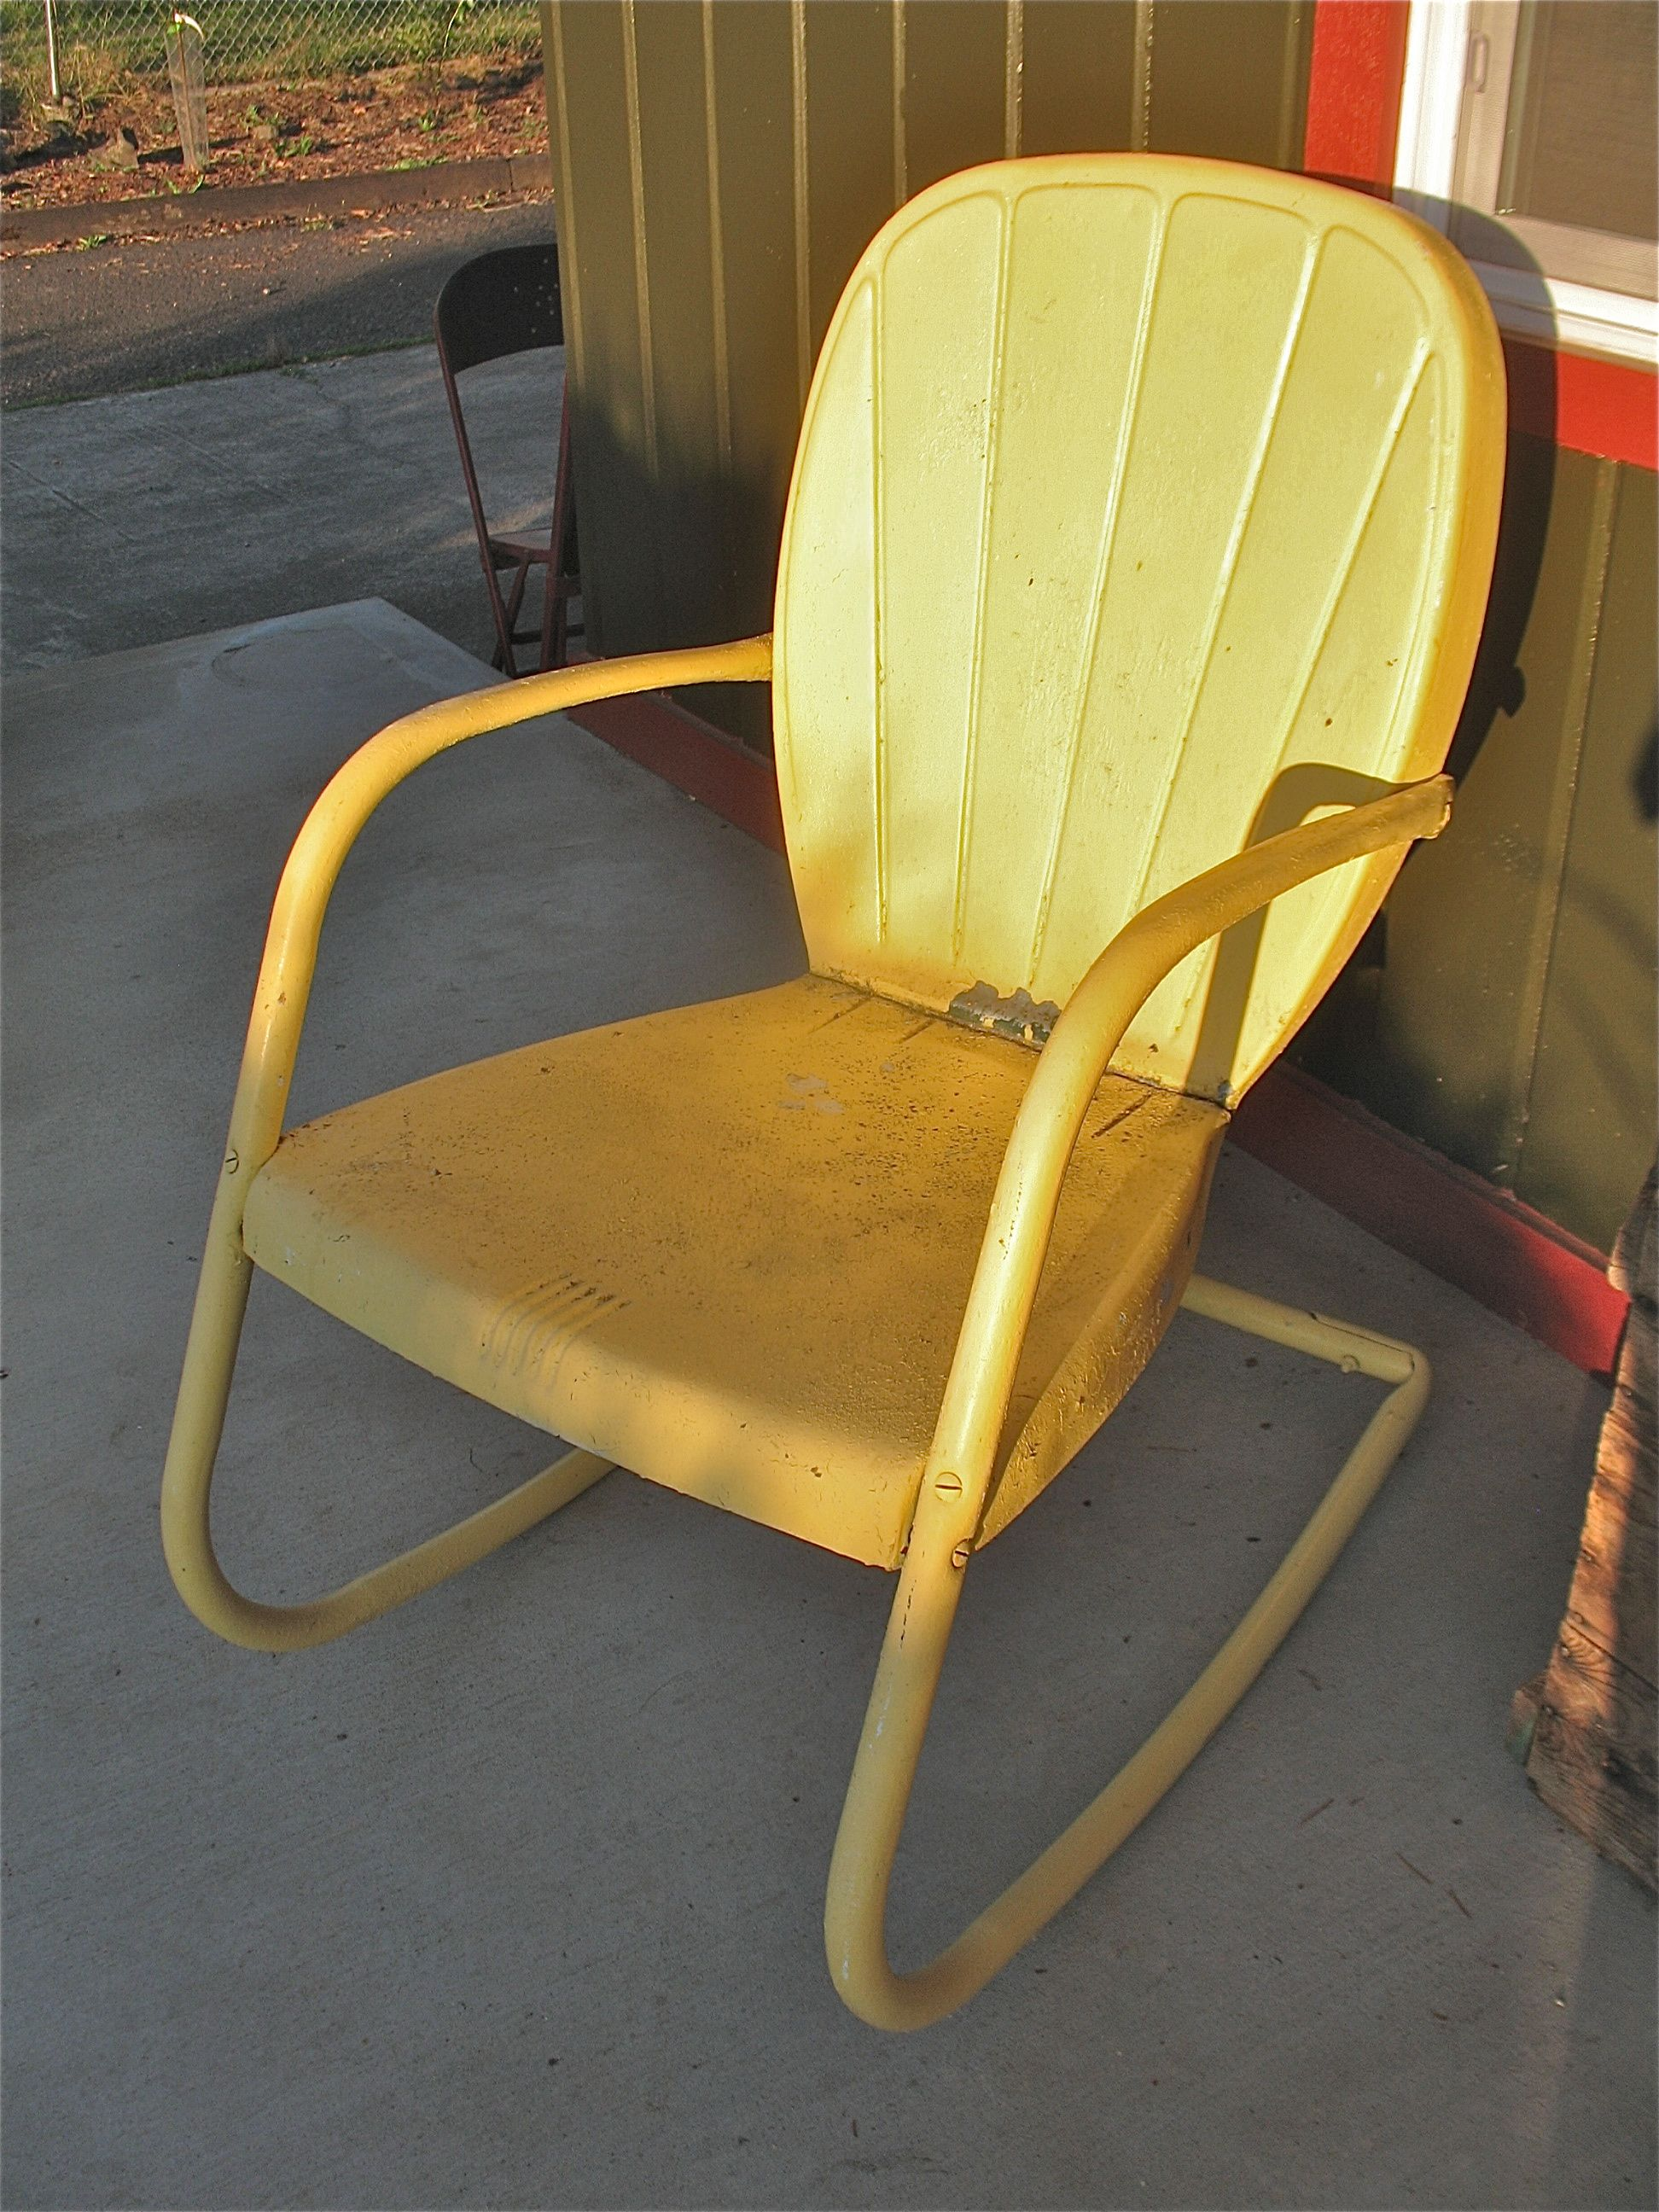 Vintage metal clamshell back motel chairsThis one